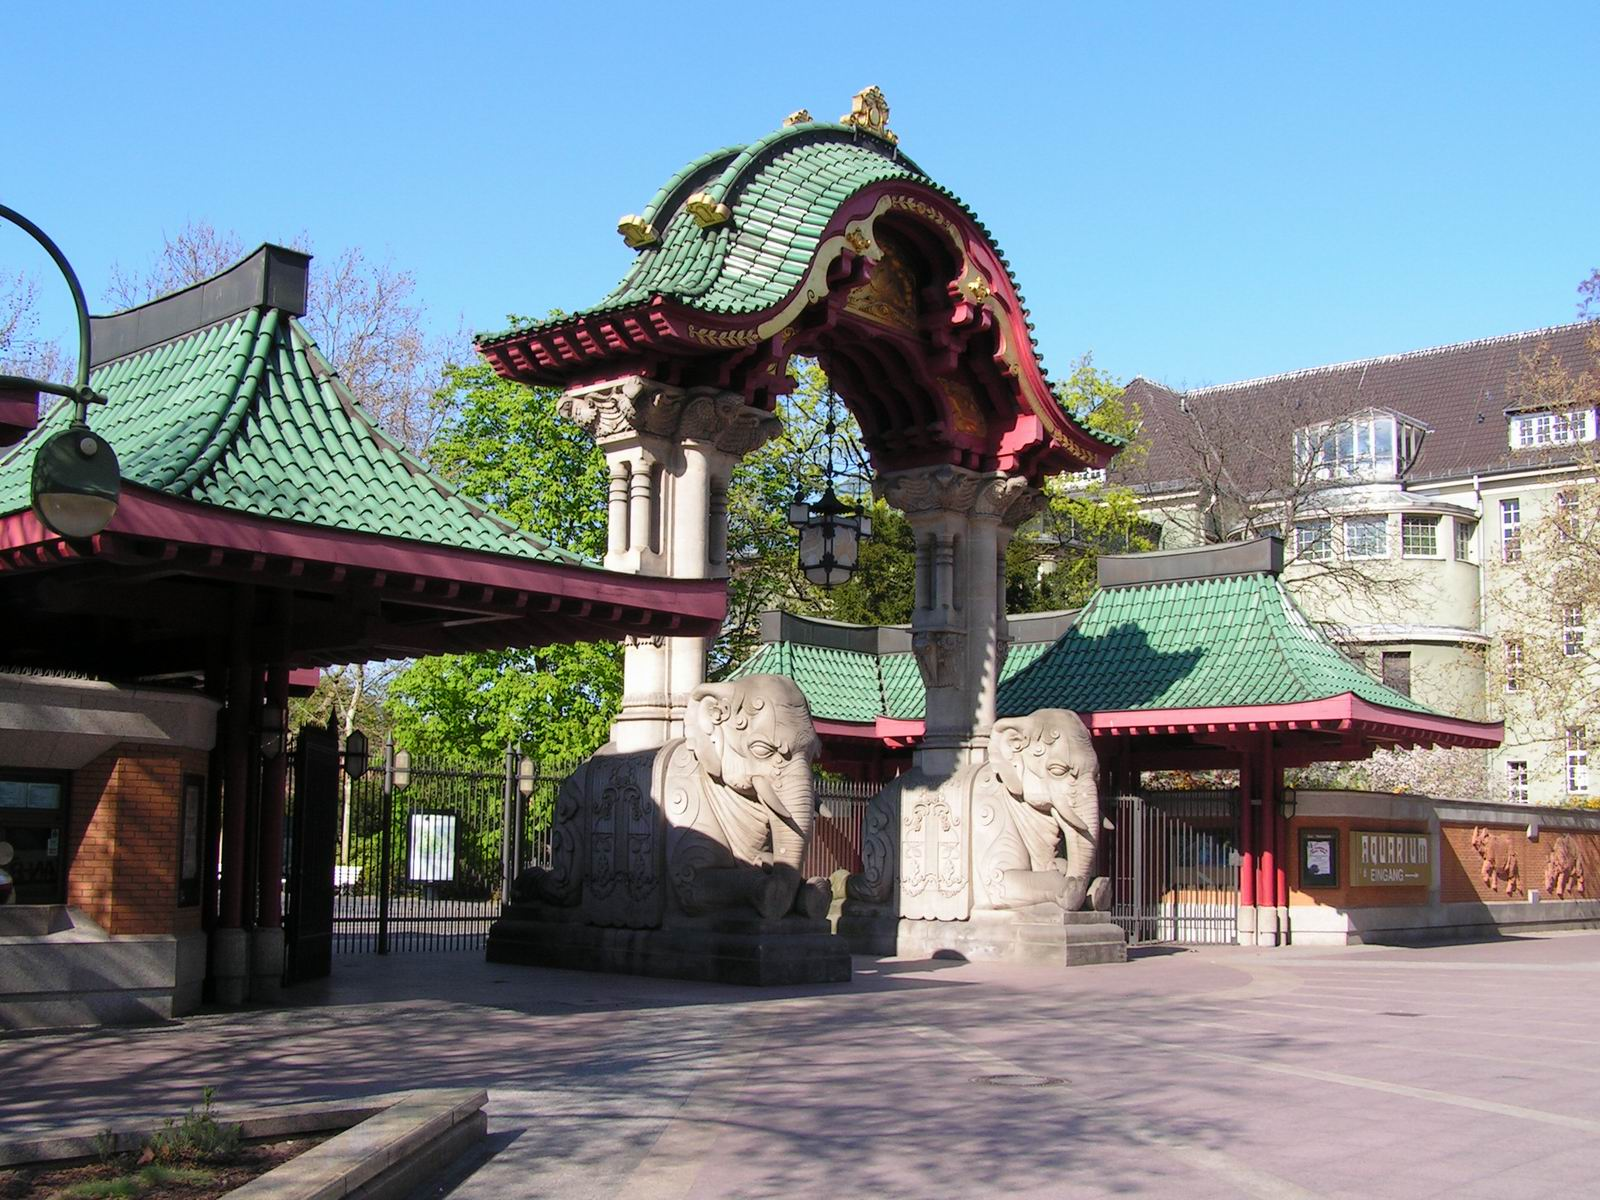 Berlin Zoo Berlin, All the beautiful animals you will see at the Berlin Zoological ...